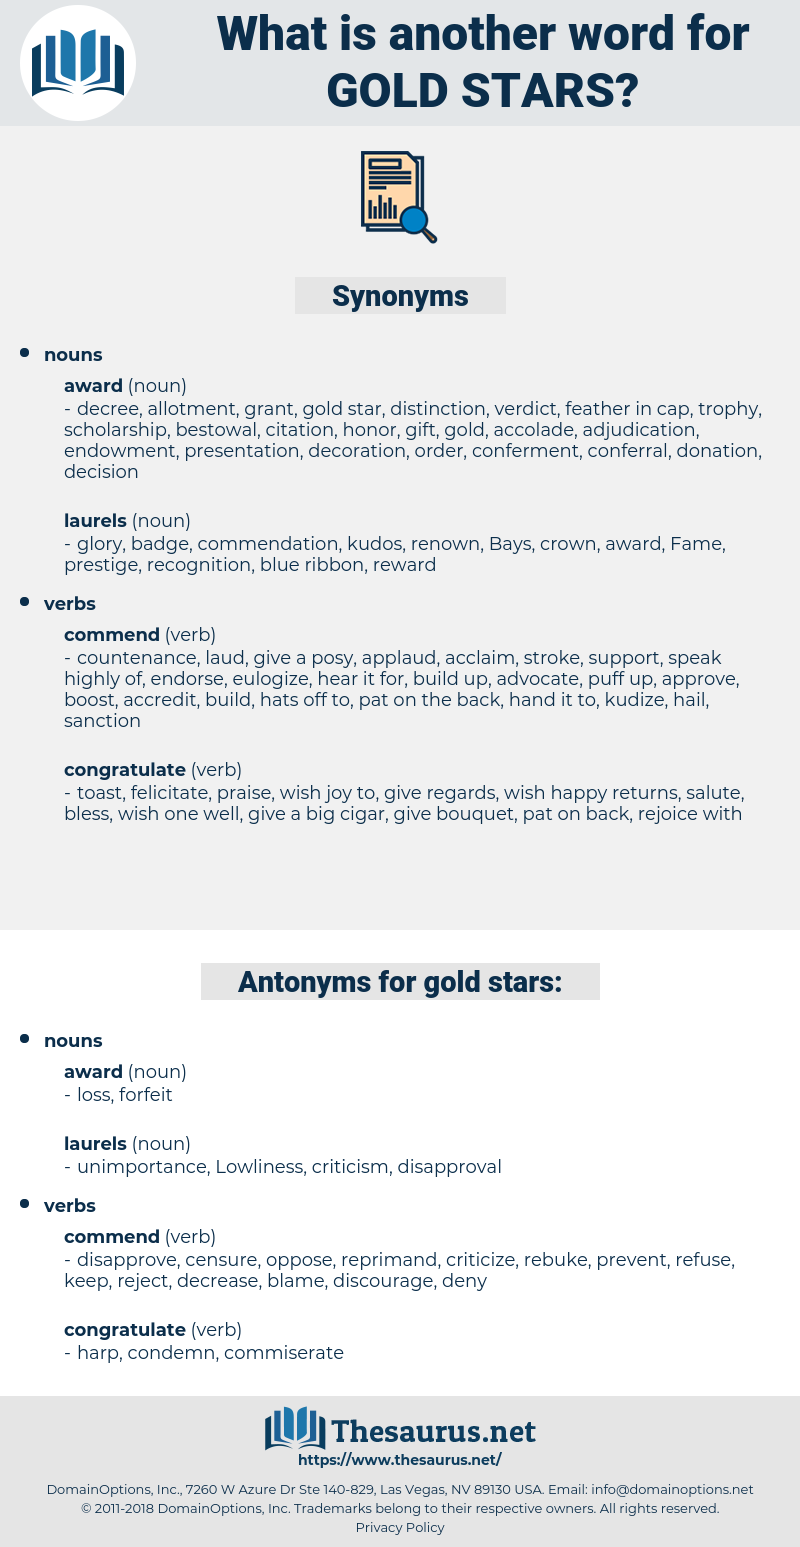 gold stars, synonym gold stars, another word for gold stars, words like gold stars, thesaurus gold stars